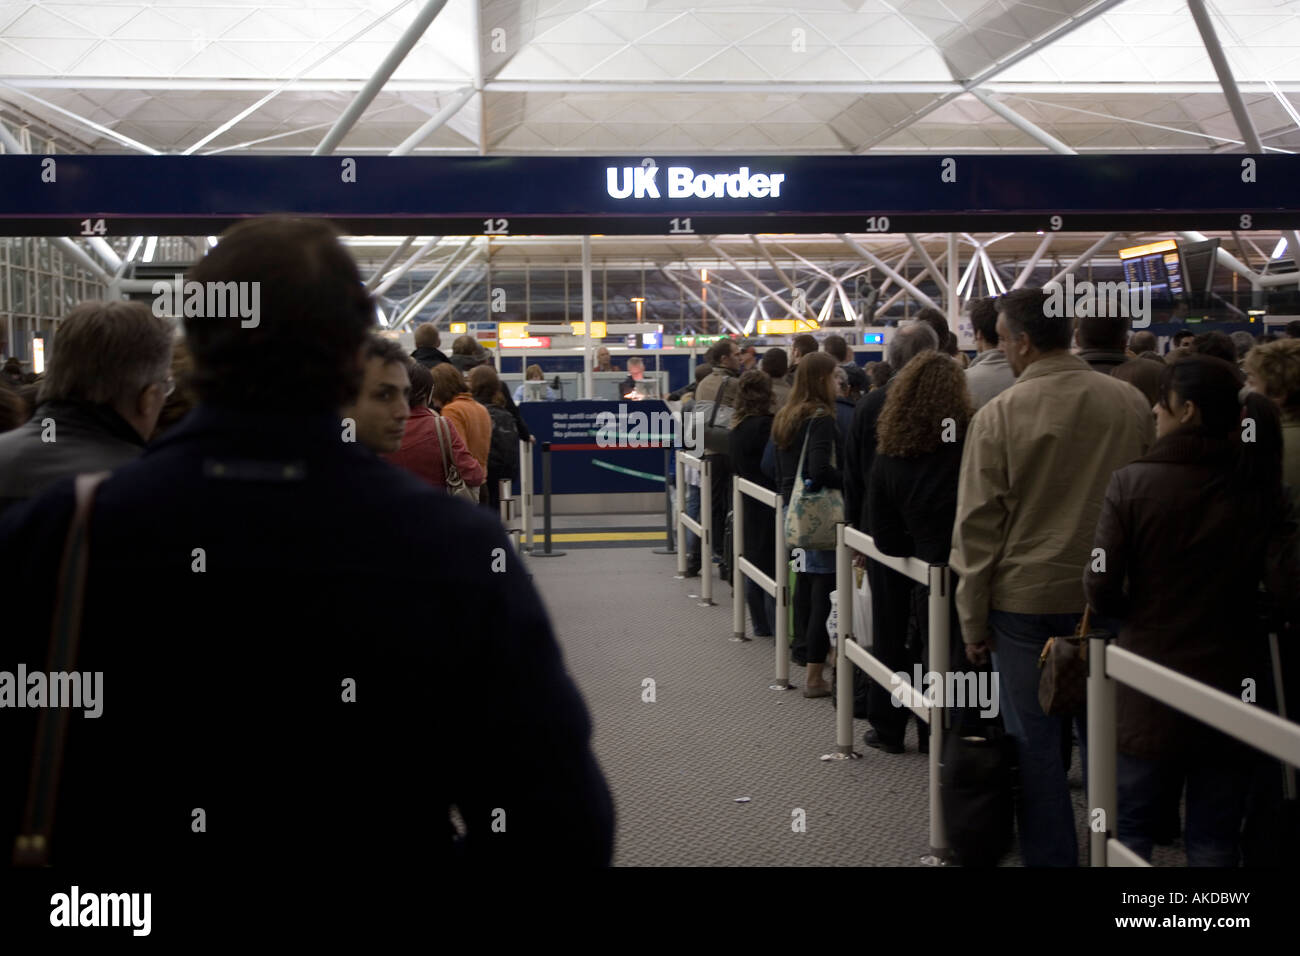 People queuing at immigration UK border, Stansted airport, London, England, Europe. - Stock Image